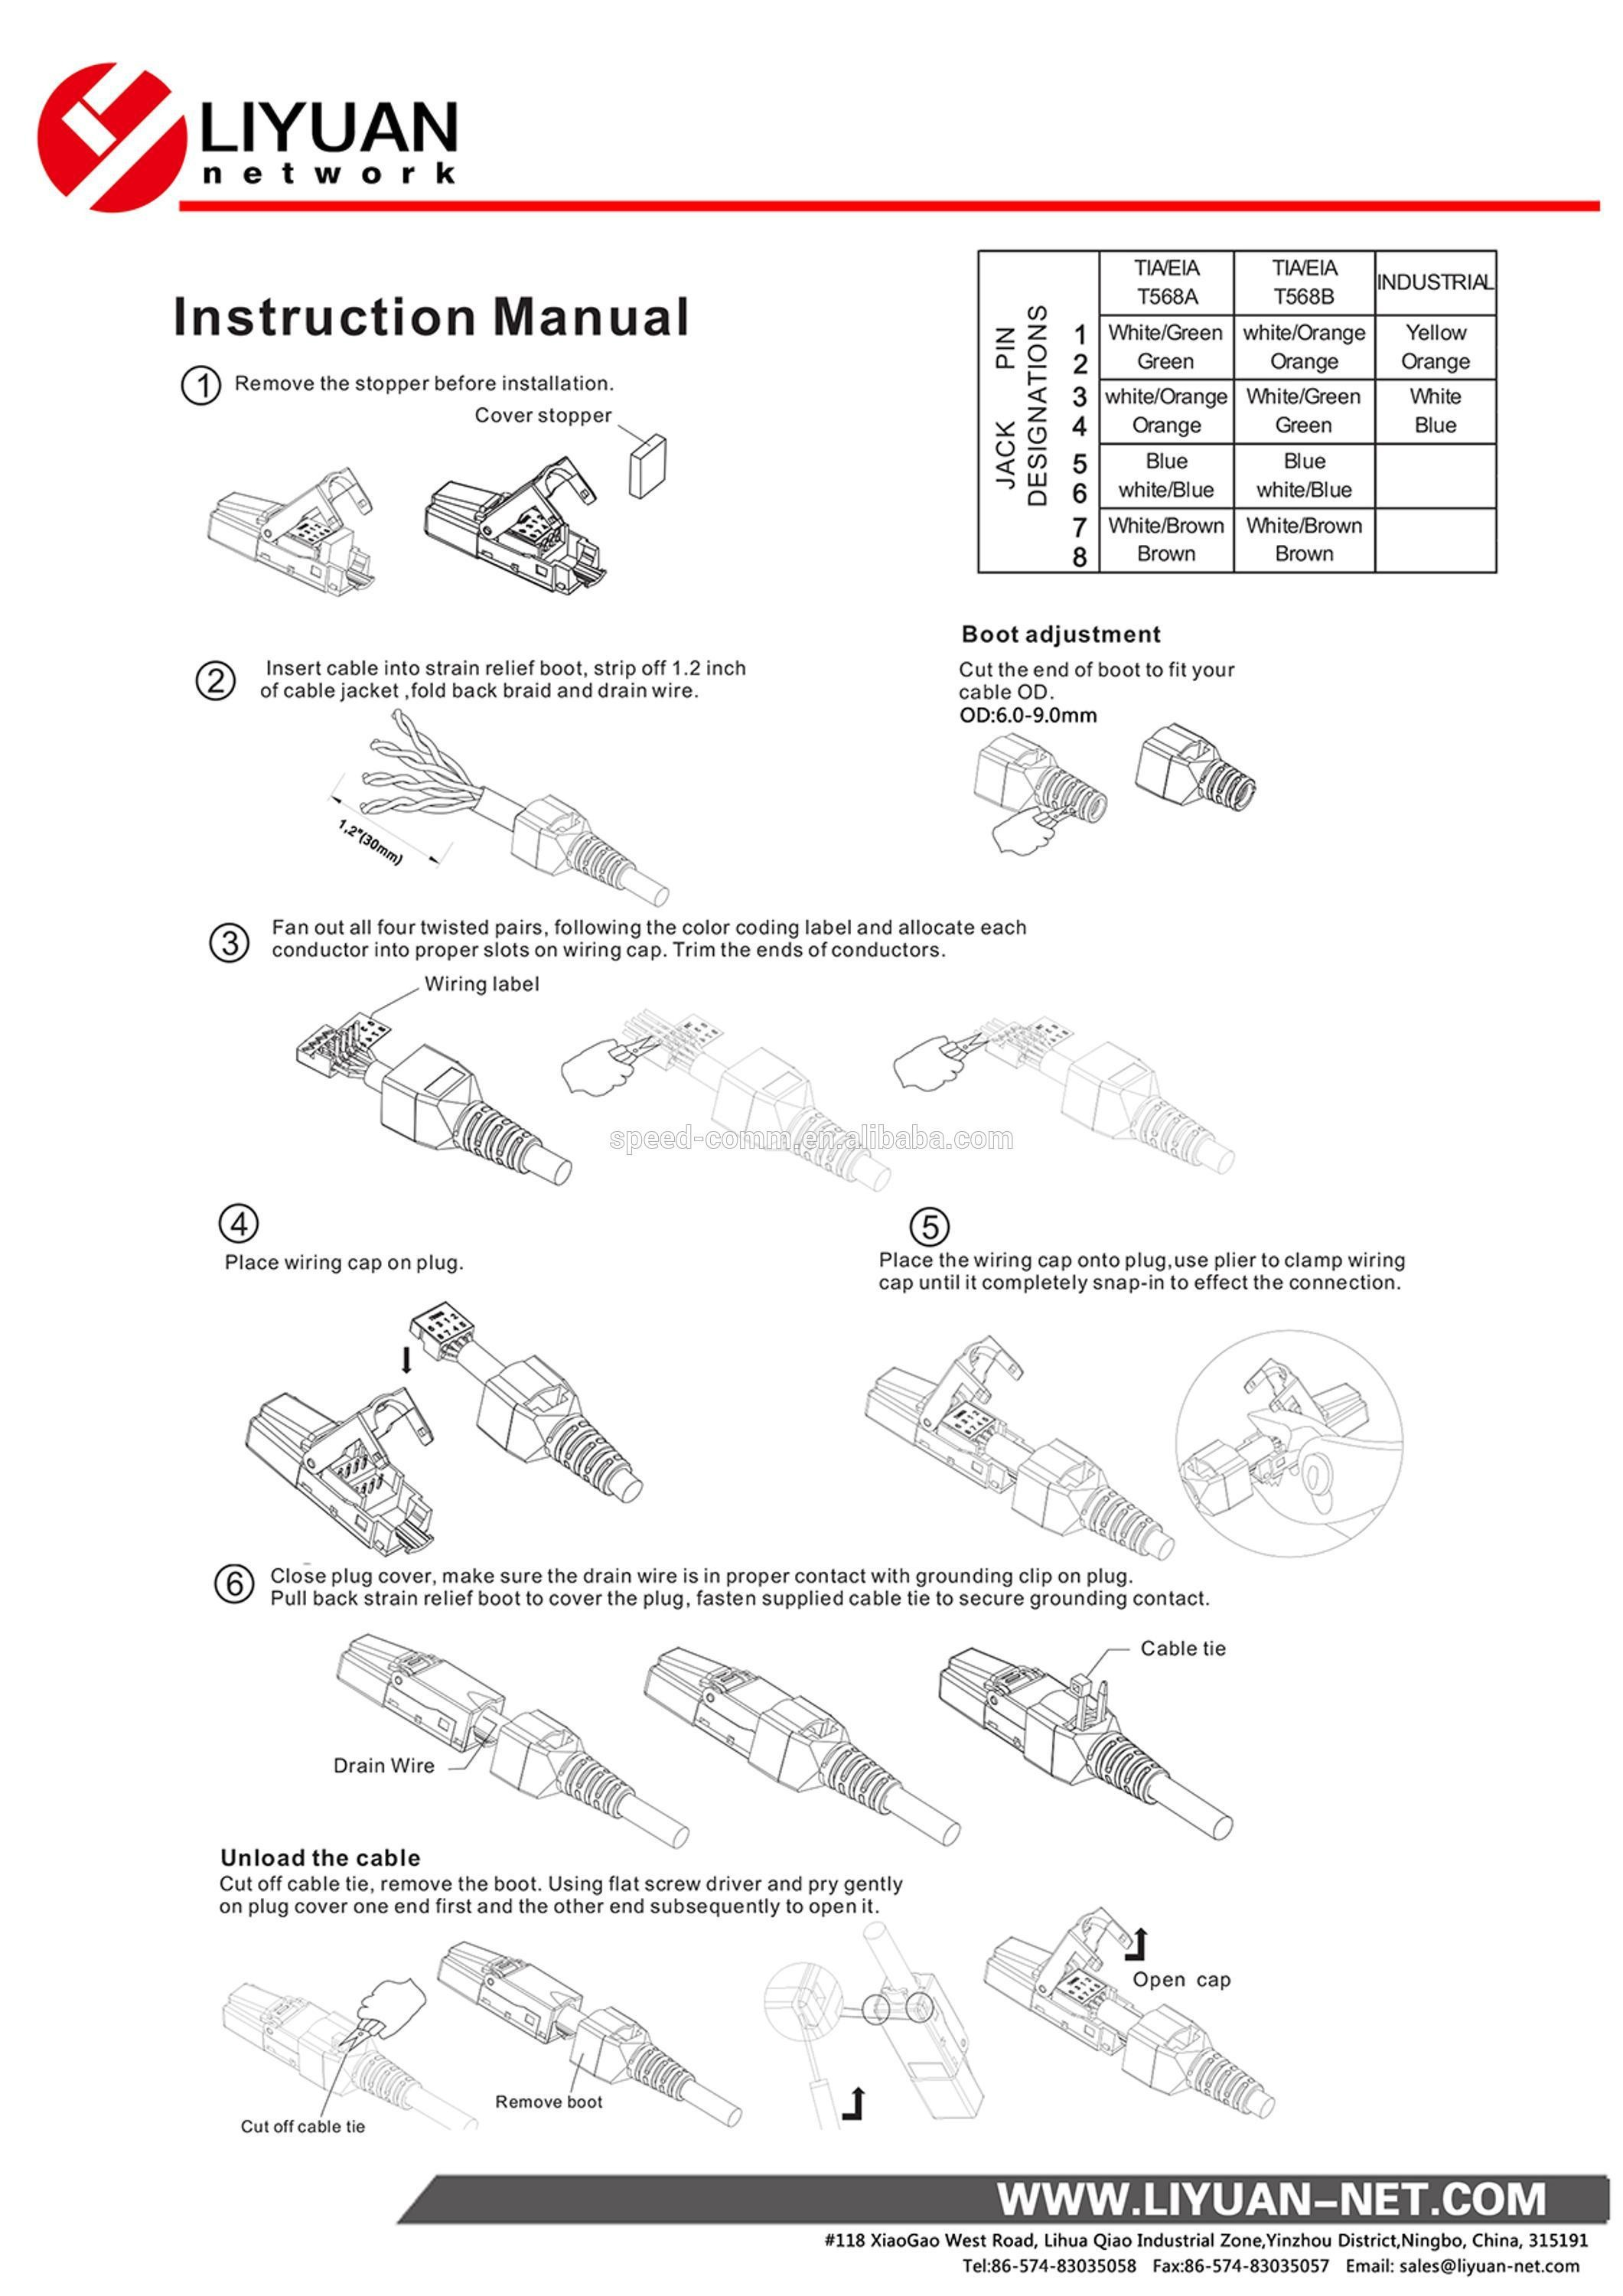 Ethernet Patch Cable Wiring Diagram Wire Diagram for Cat5e Rj45 Connectors Fresh Rj45 Connector Wiring Of Ethernet Patch Cable Wiring Diagram Cat 5 Cable Diagram Cat5e Wire Diagram New Ethernet Cable Wiring